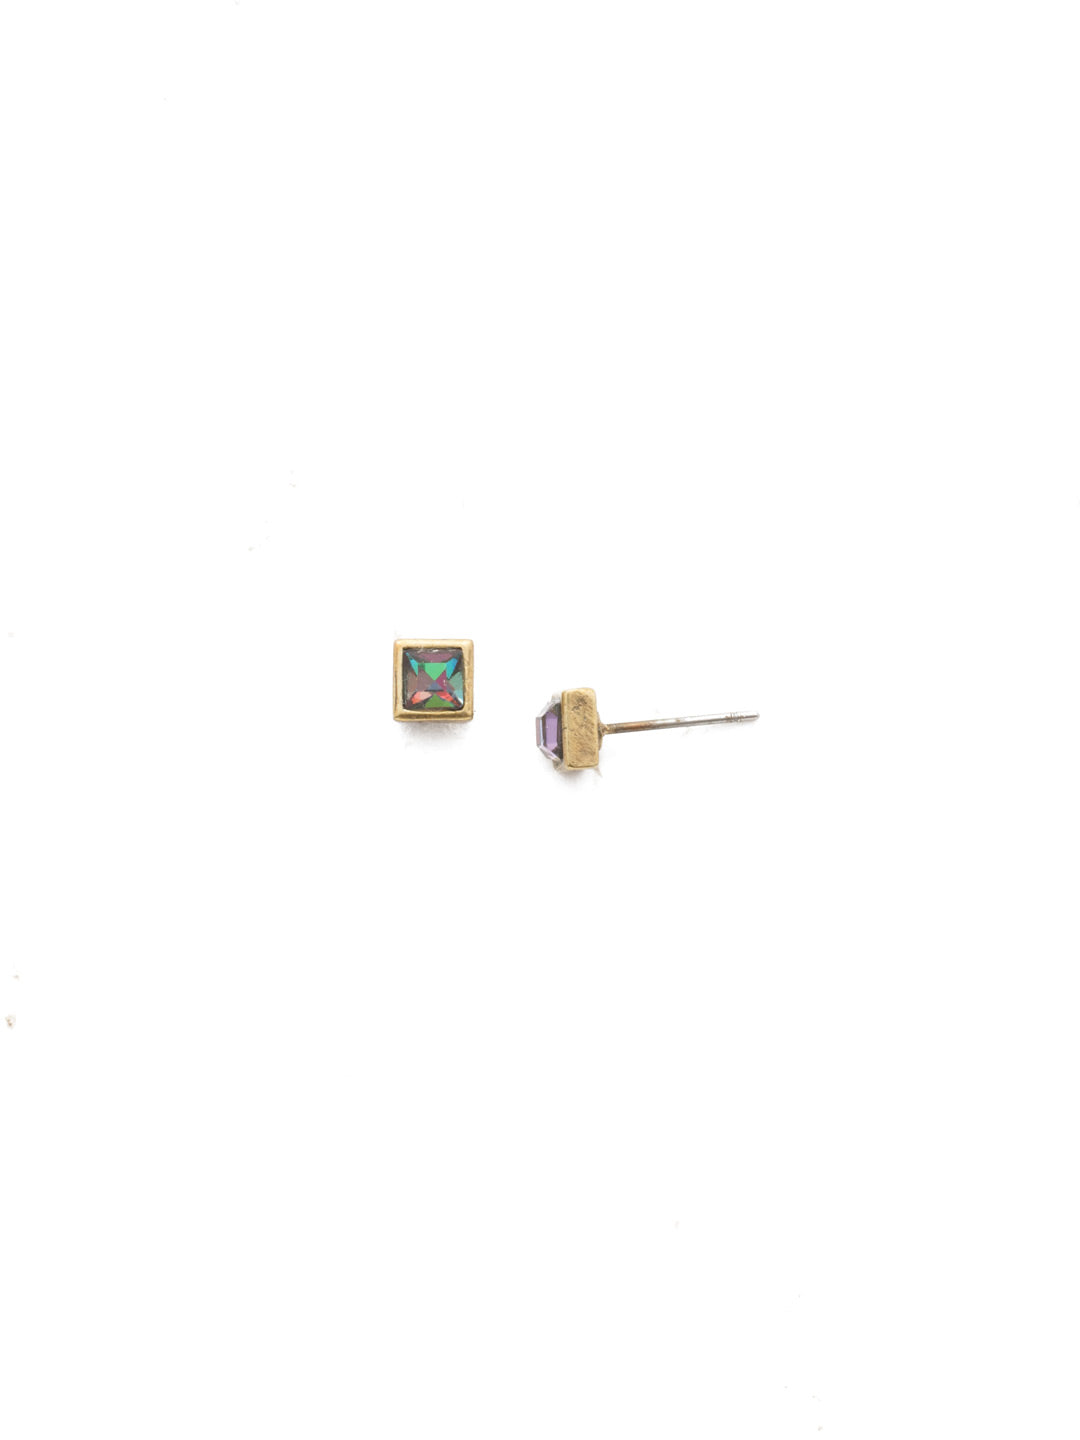 Square Stuff Stud Earrings - ECM53AGIRB